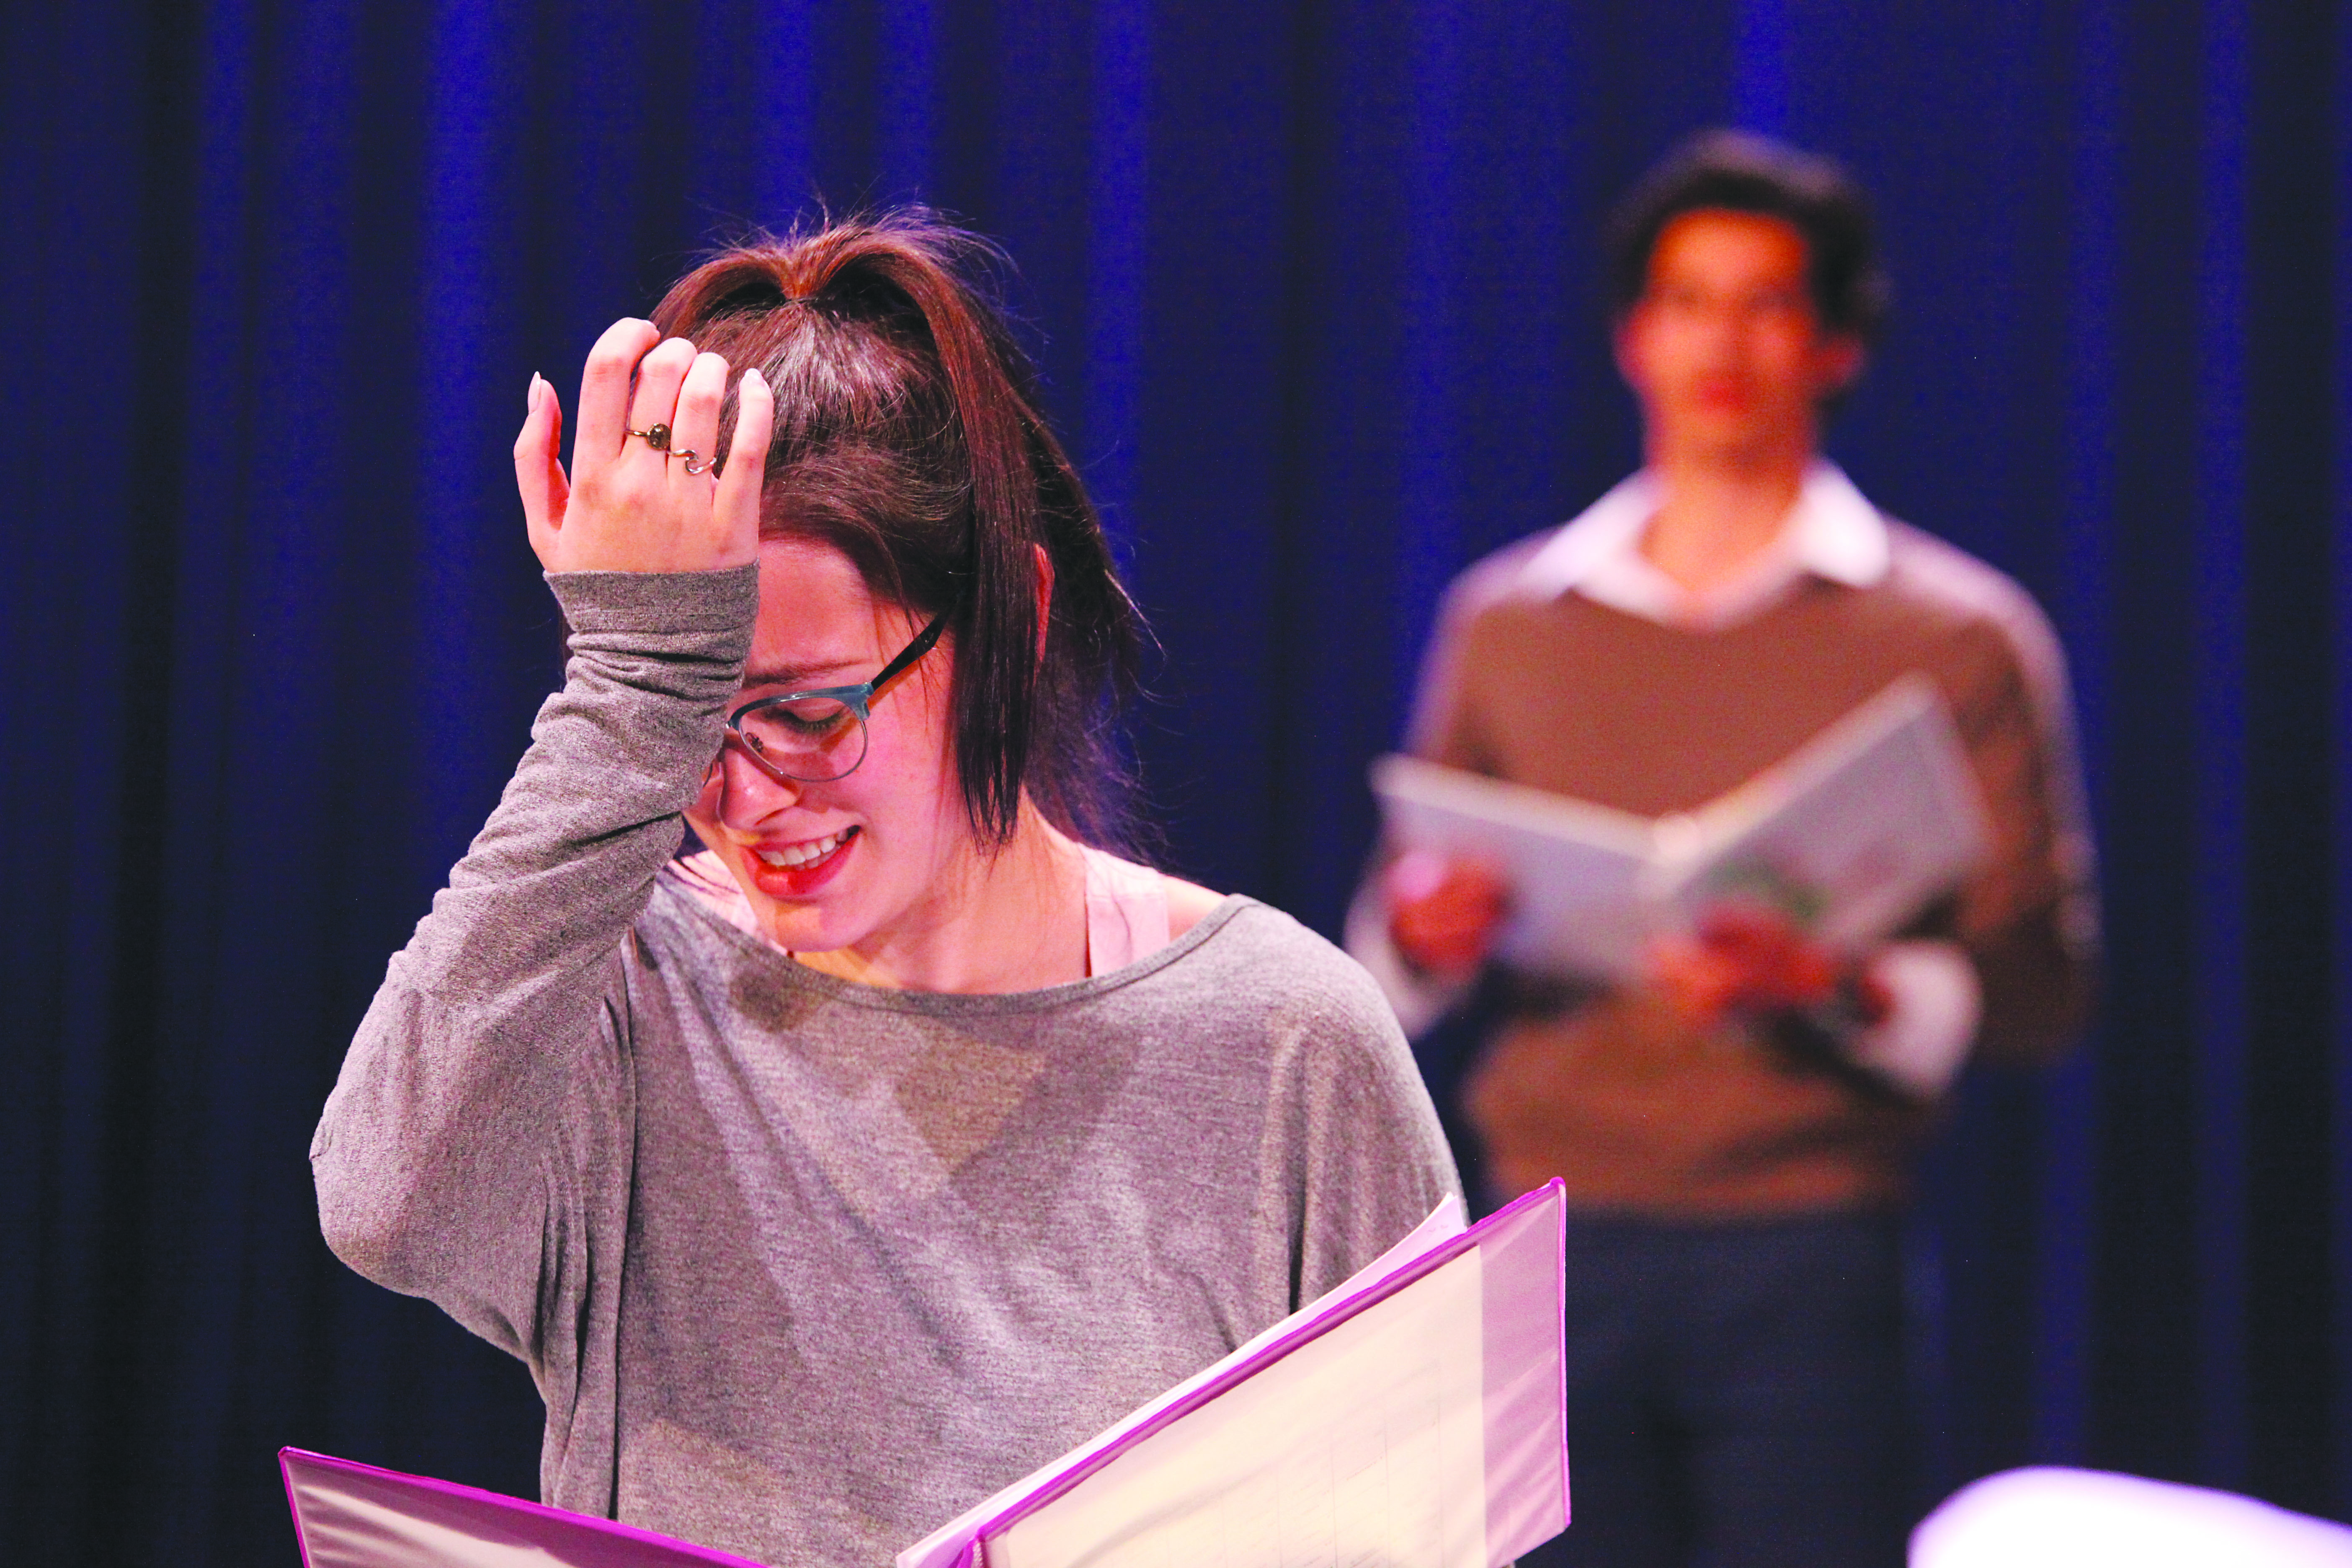 Play to offer introspective look into theater